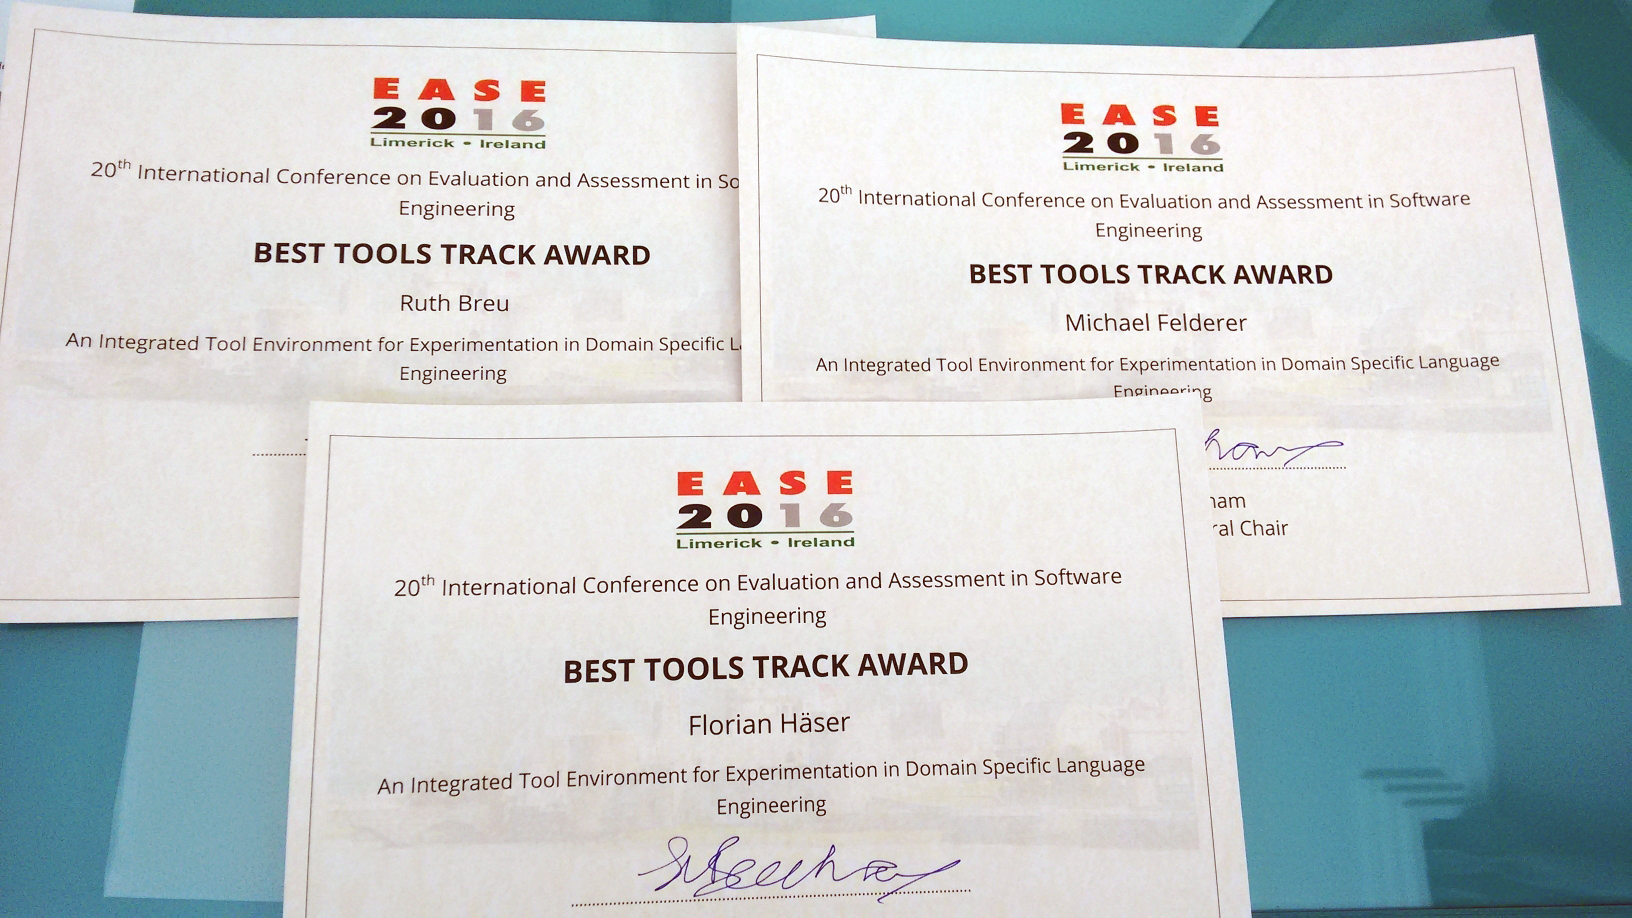 Best Tools Track Award at EASE 2016